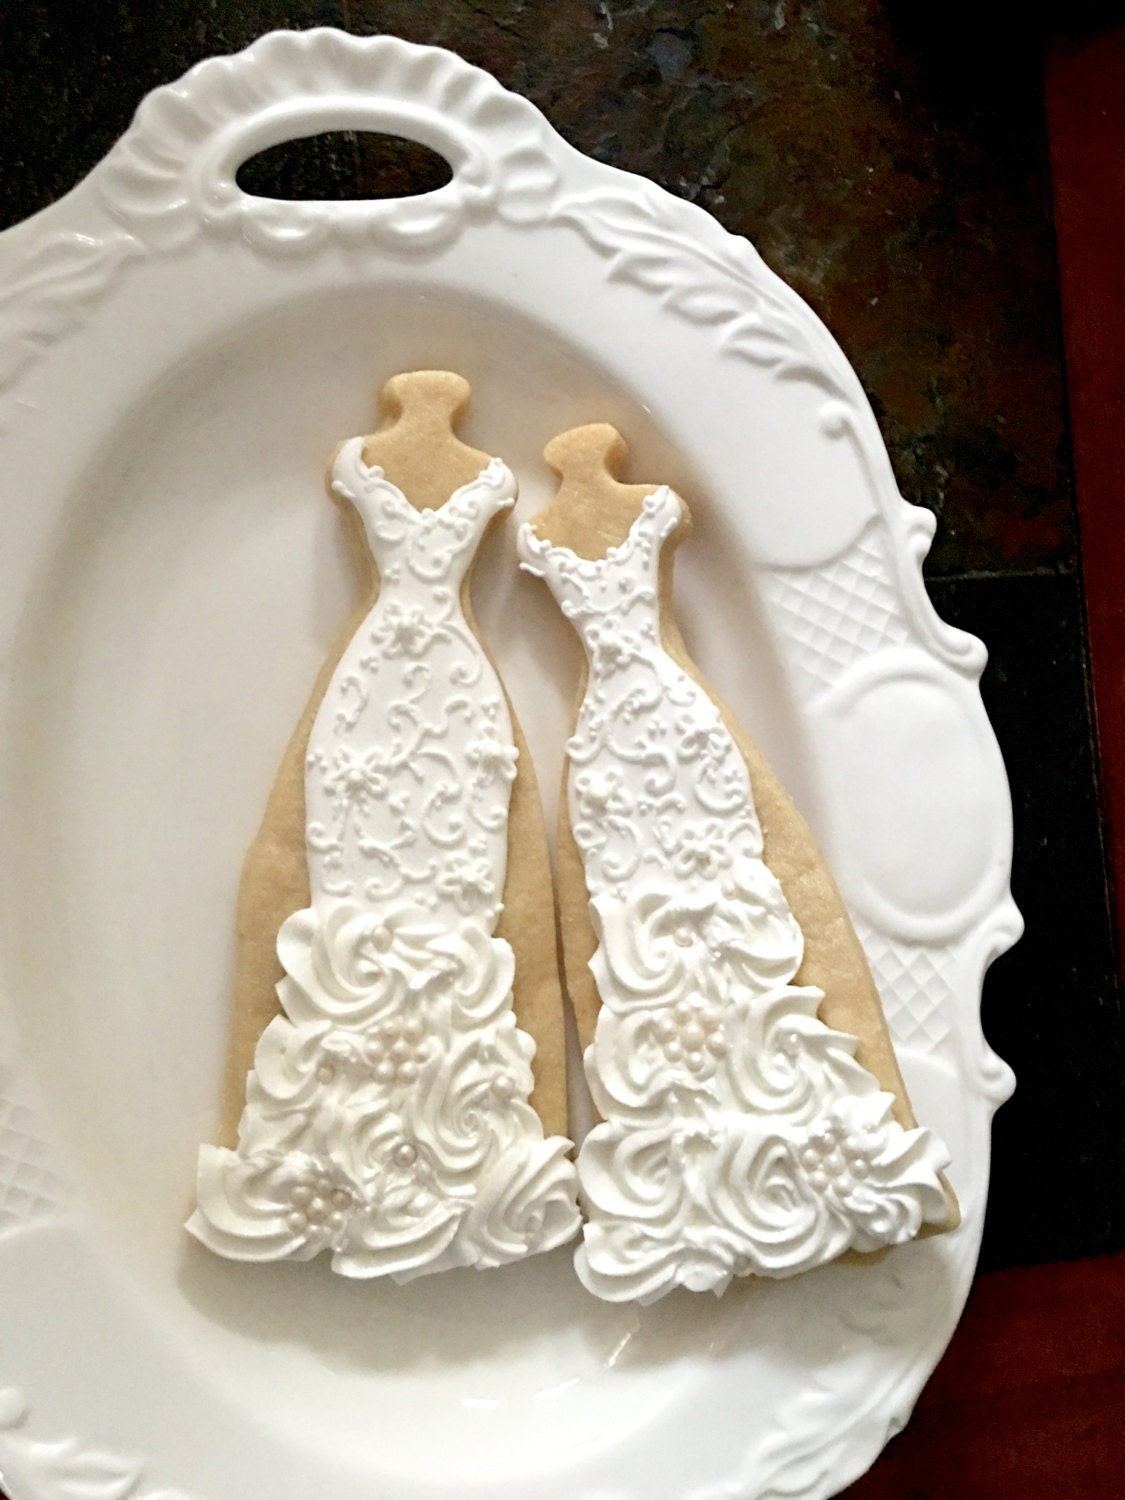 10 Lace, Rosette Ruffles, and Pearls Gown Cookies-Lace Wedding Dress ...